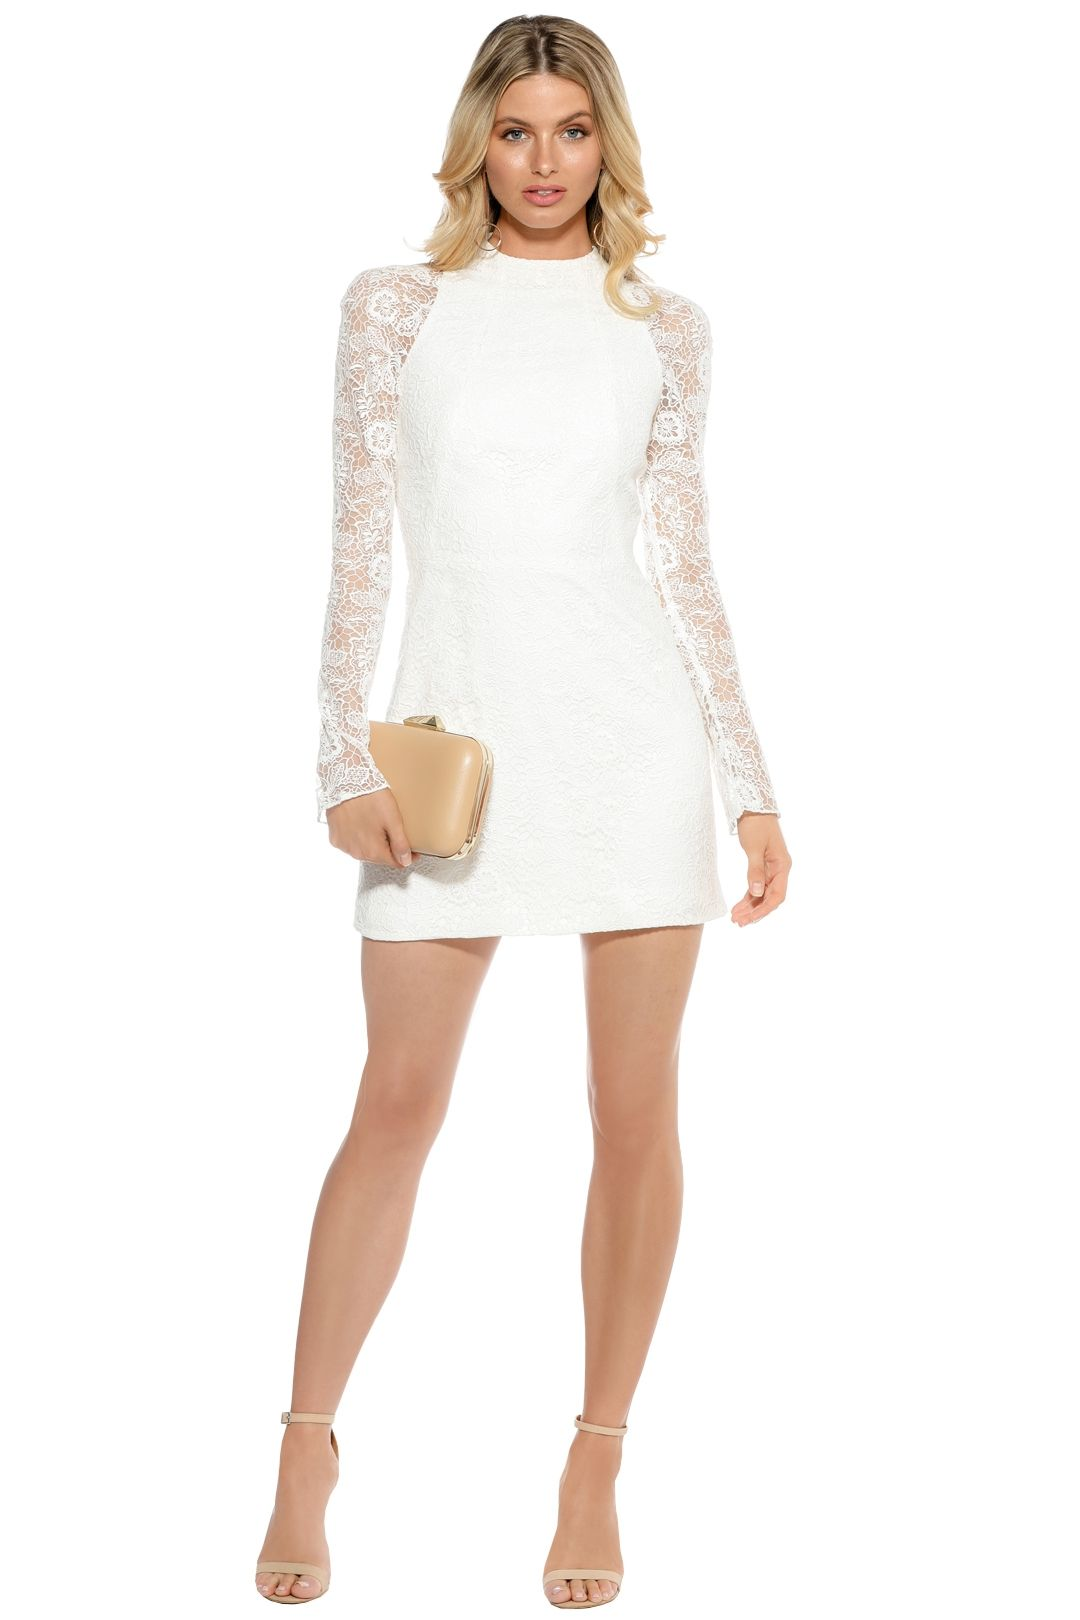 Manning Cartell - Tea Party Mini Dress - White - Front